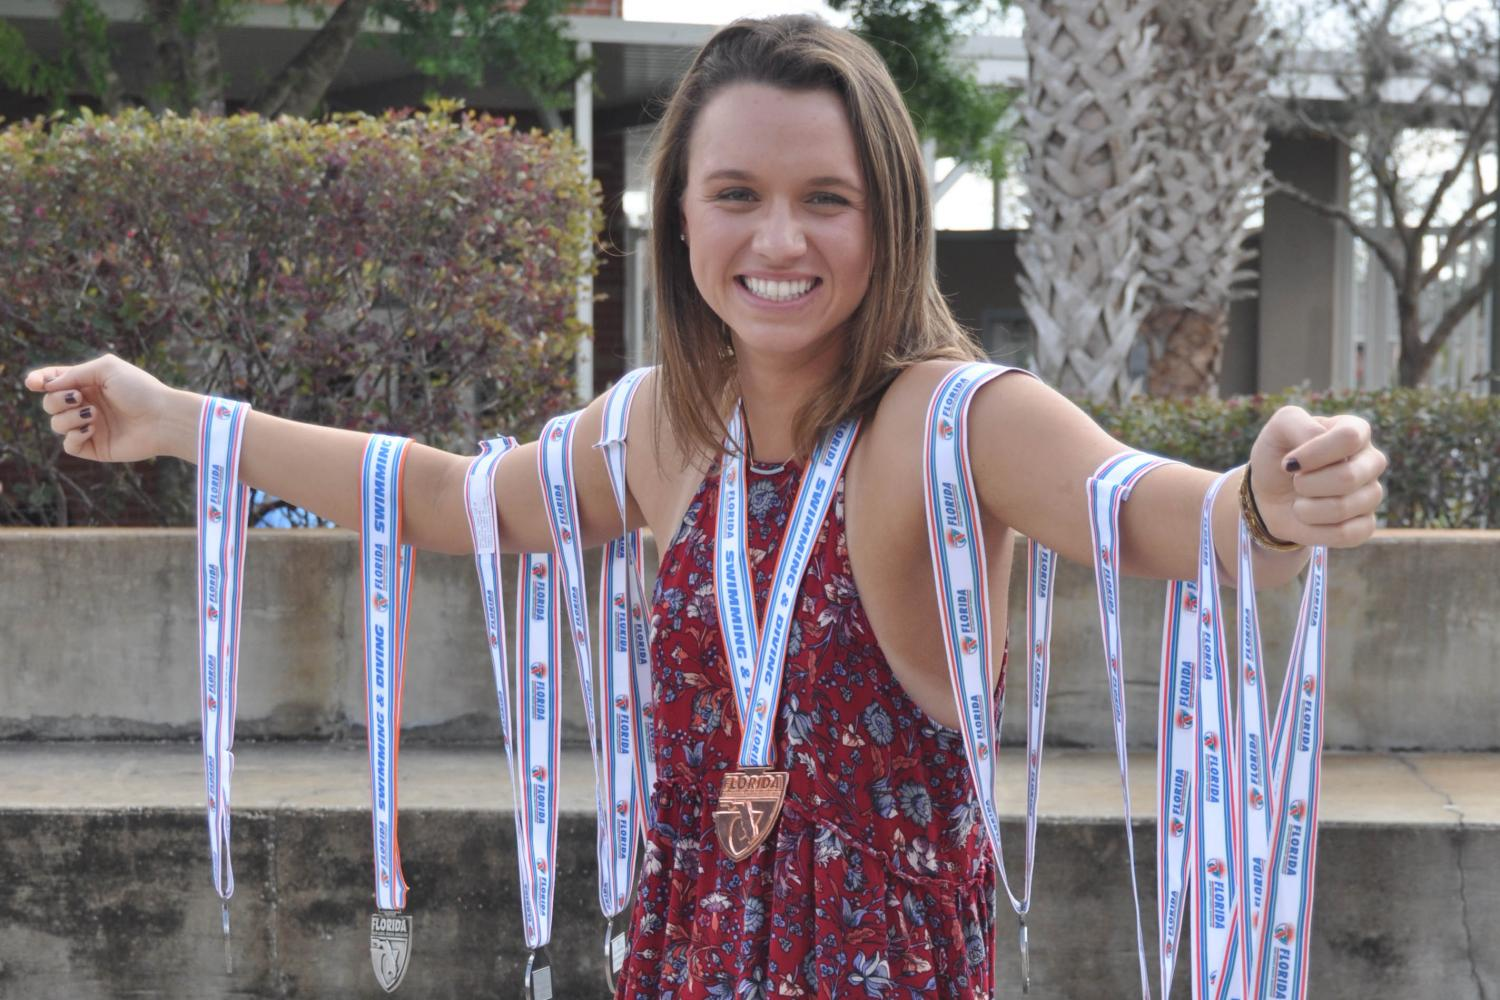 Boddiford with her collection of medals won throughout her four years competing in high school swimming tournaments.